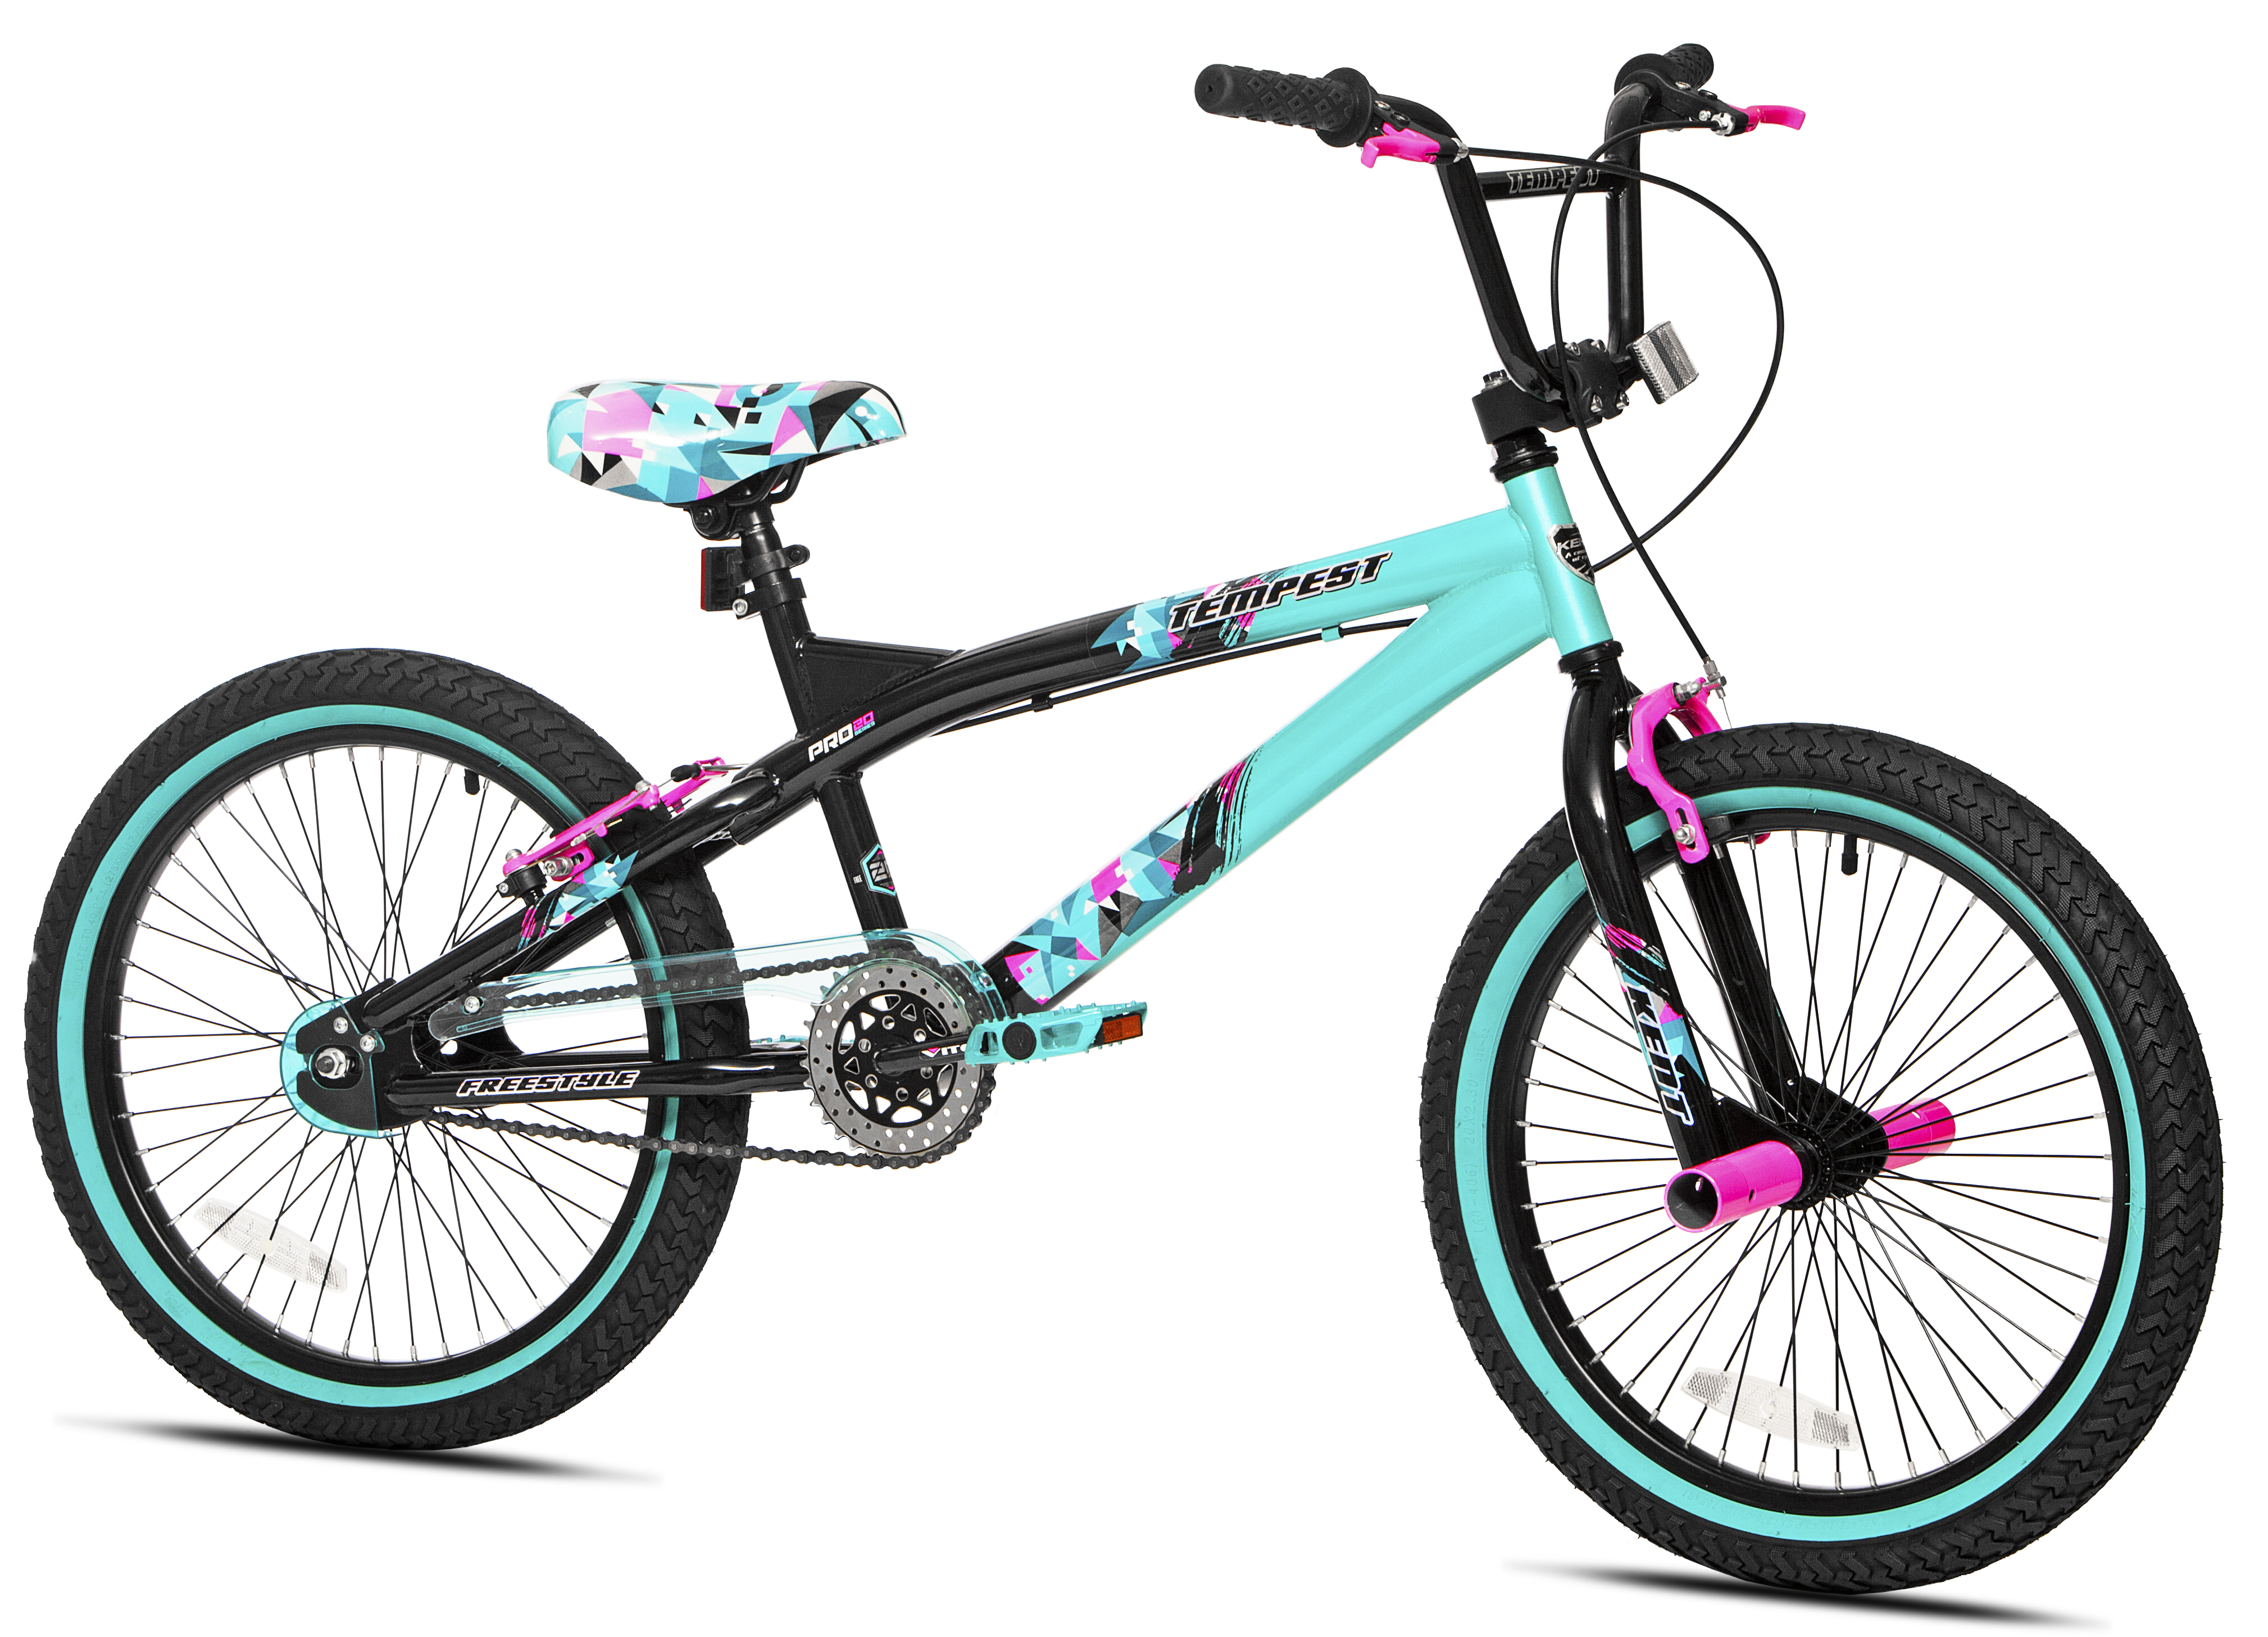 "Kent 20"" Tempest Girl's Bike, Black Green, For Height Sizes 4'2"" and Up by Kent International Inc"